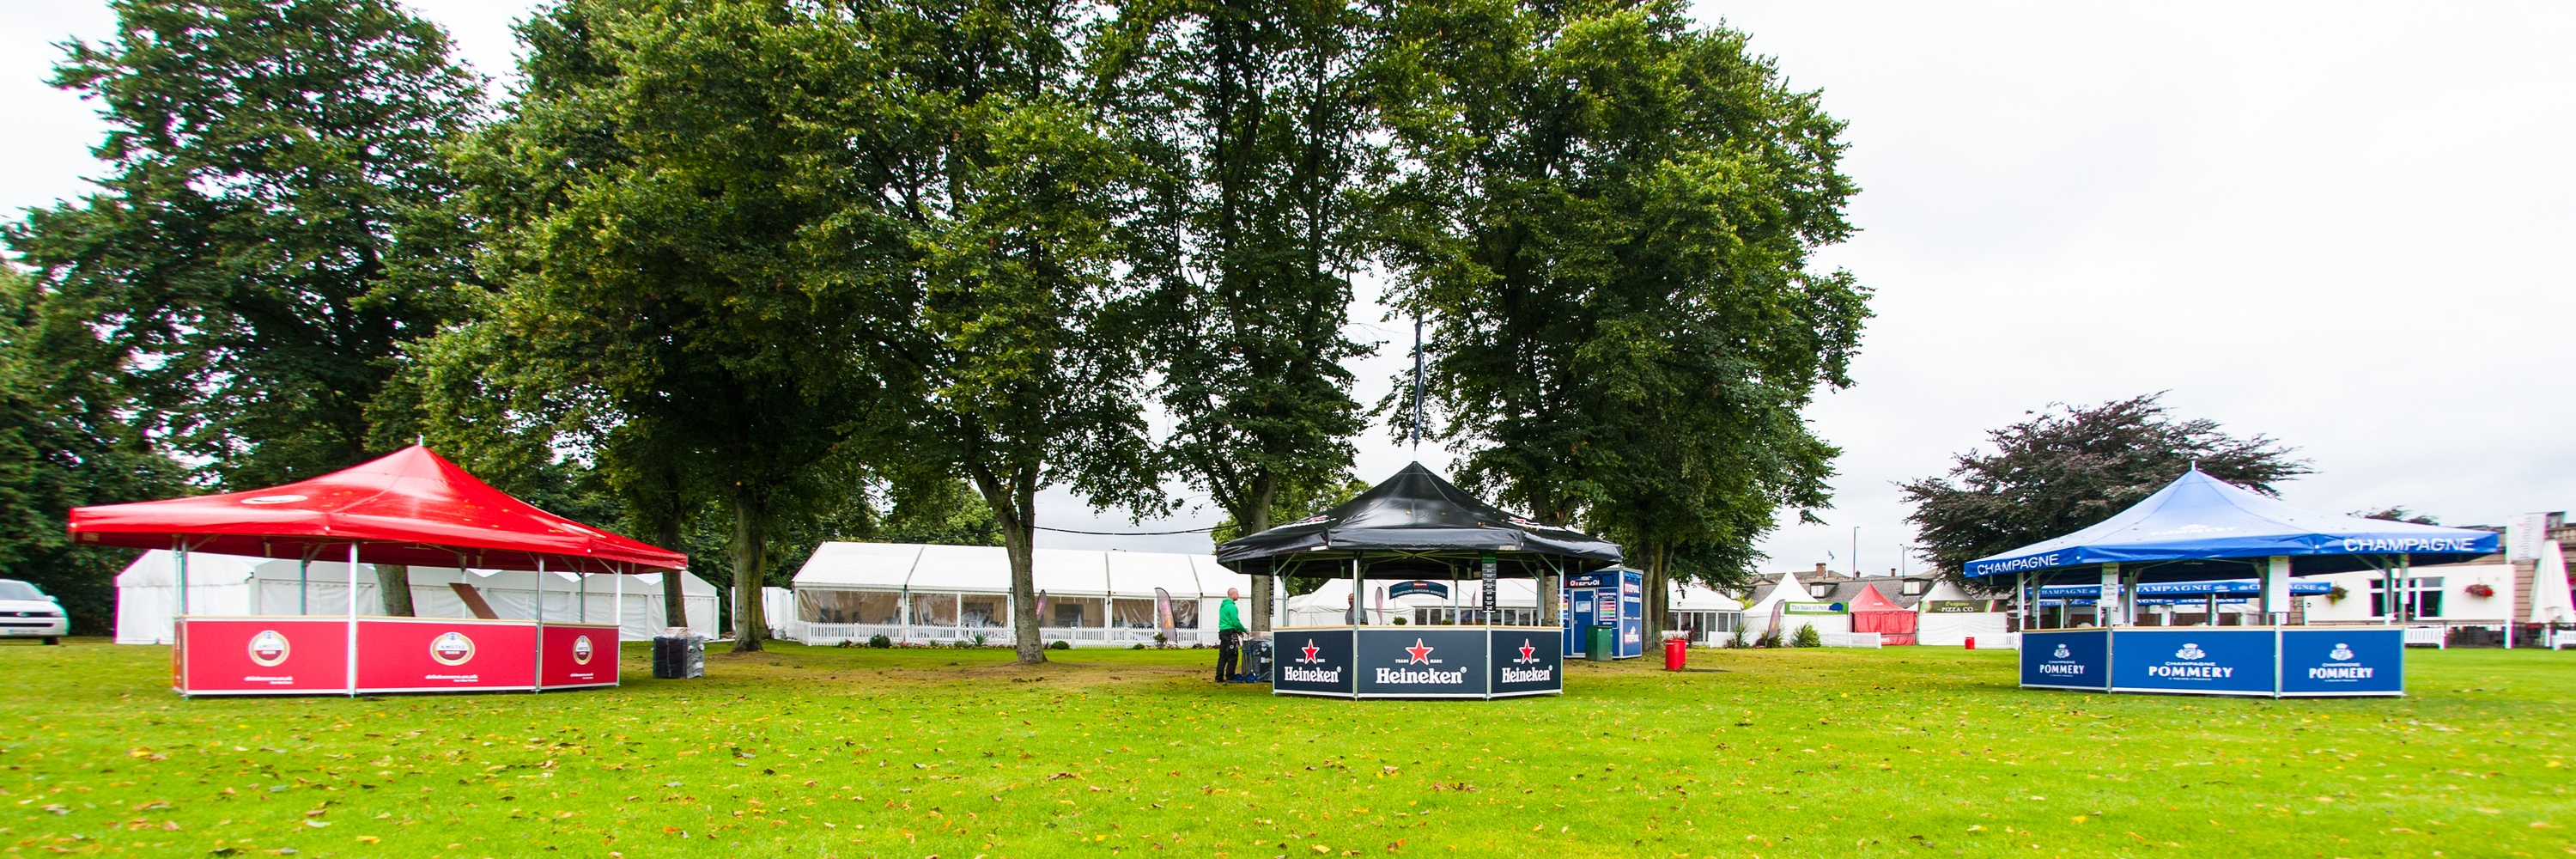 <p>Event, Mobile &amp; Stadia Bars &#8211; Tents &amp; Marquees &#8211; Pavilions &#8211; Octagonal Outdoor Bars</p> <p>&nbsp;</p> <p>Pavilion Bars &#8211; Octagonal Outdoor Event Bar and Champagne Bar &#8211; Amstel, Heineken &amp; Pommery Bars</p> <p>&nbsp;</p> <p>Ideally suited for prestigious sporting events at racecourses, cricket grounds etc</p>